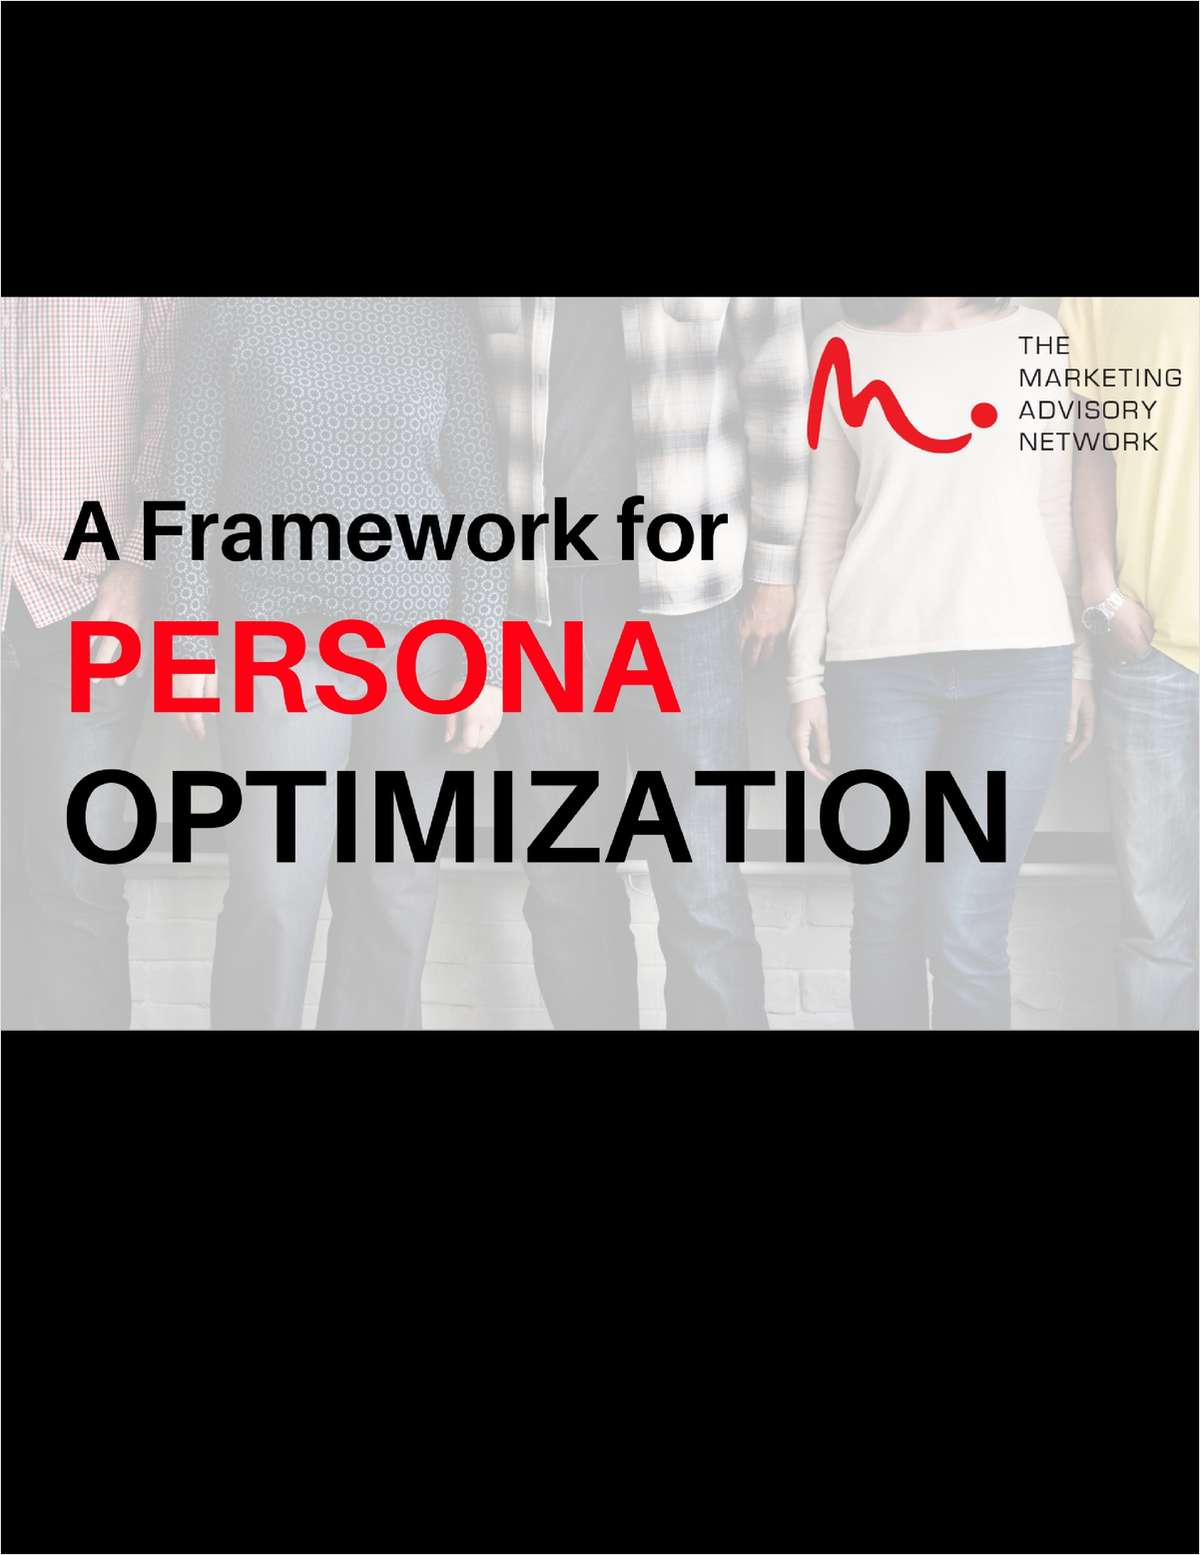 A Framework for Persona Optimization